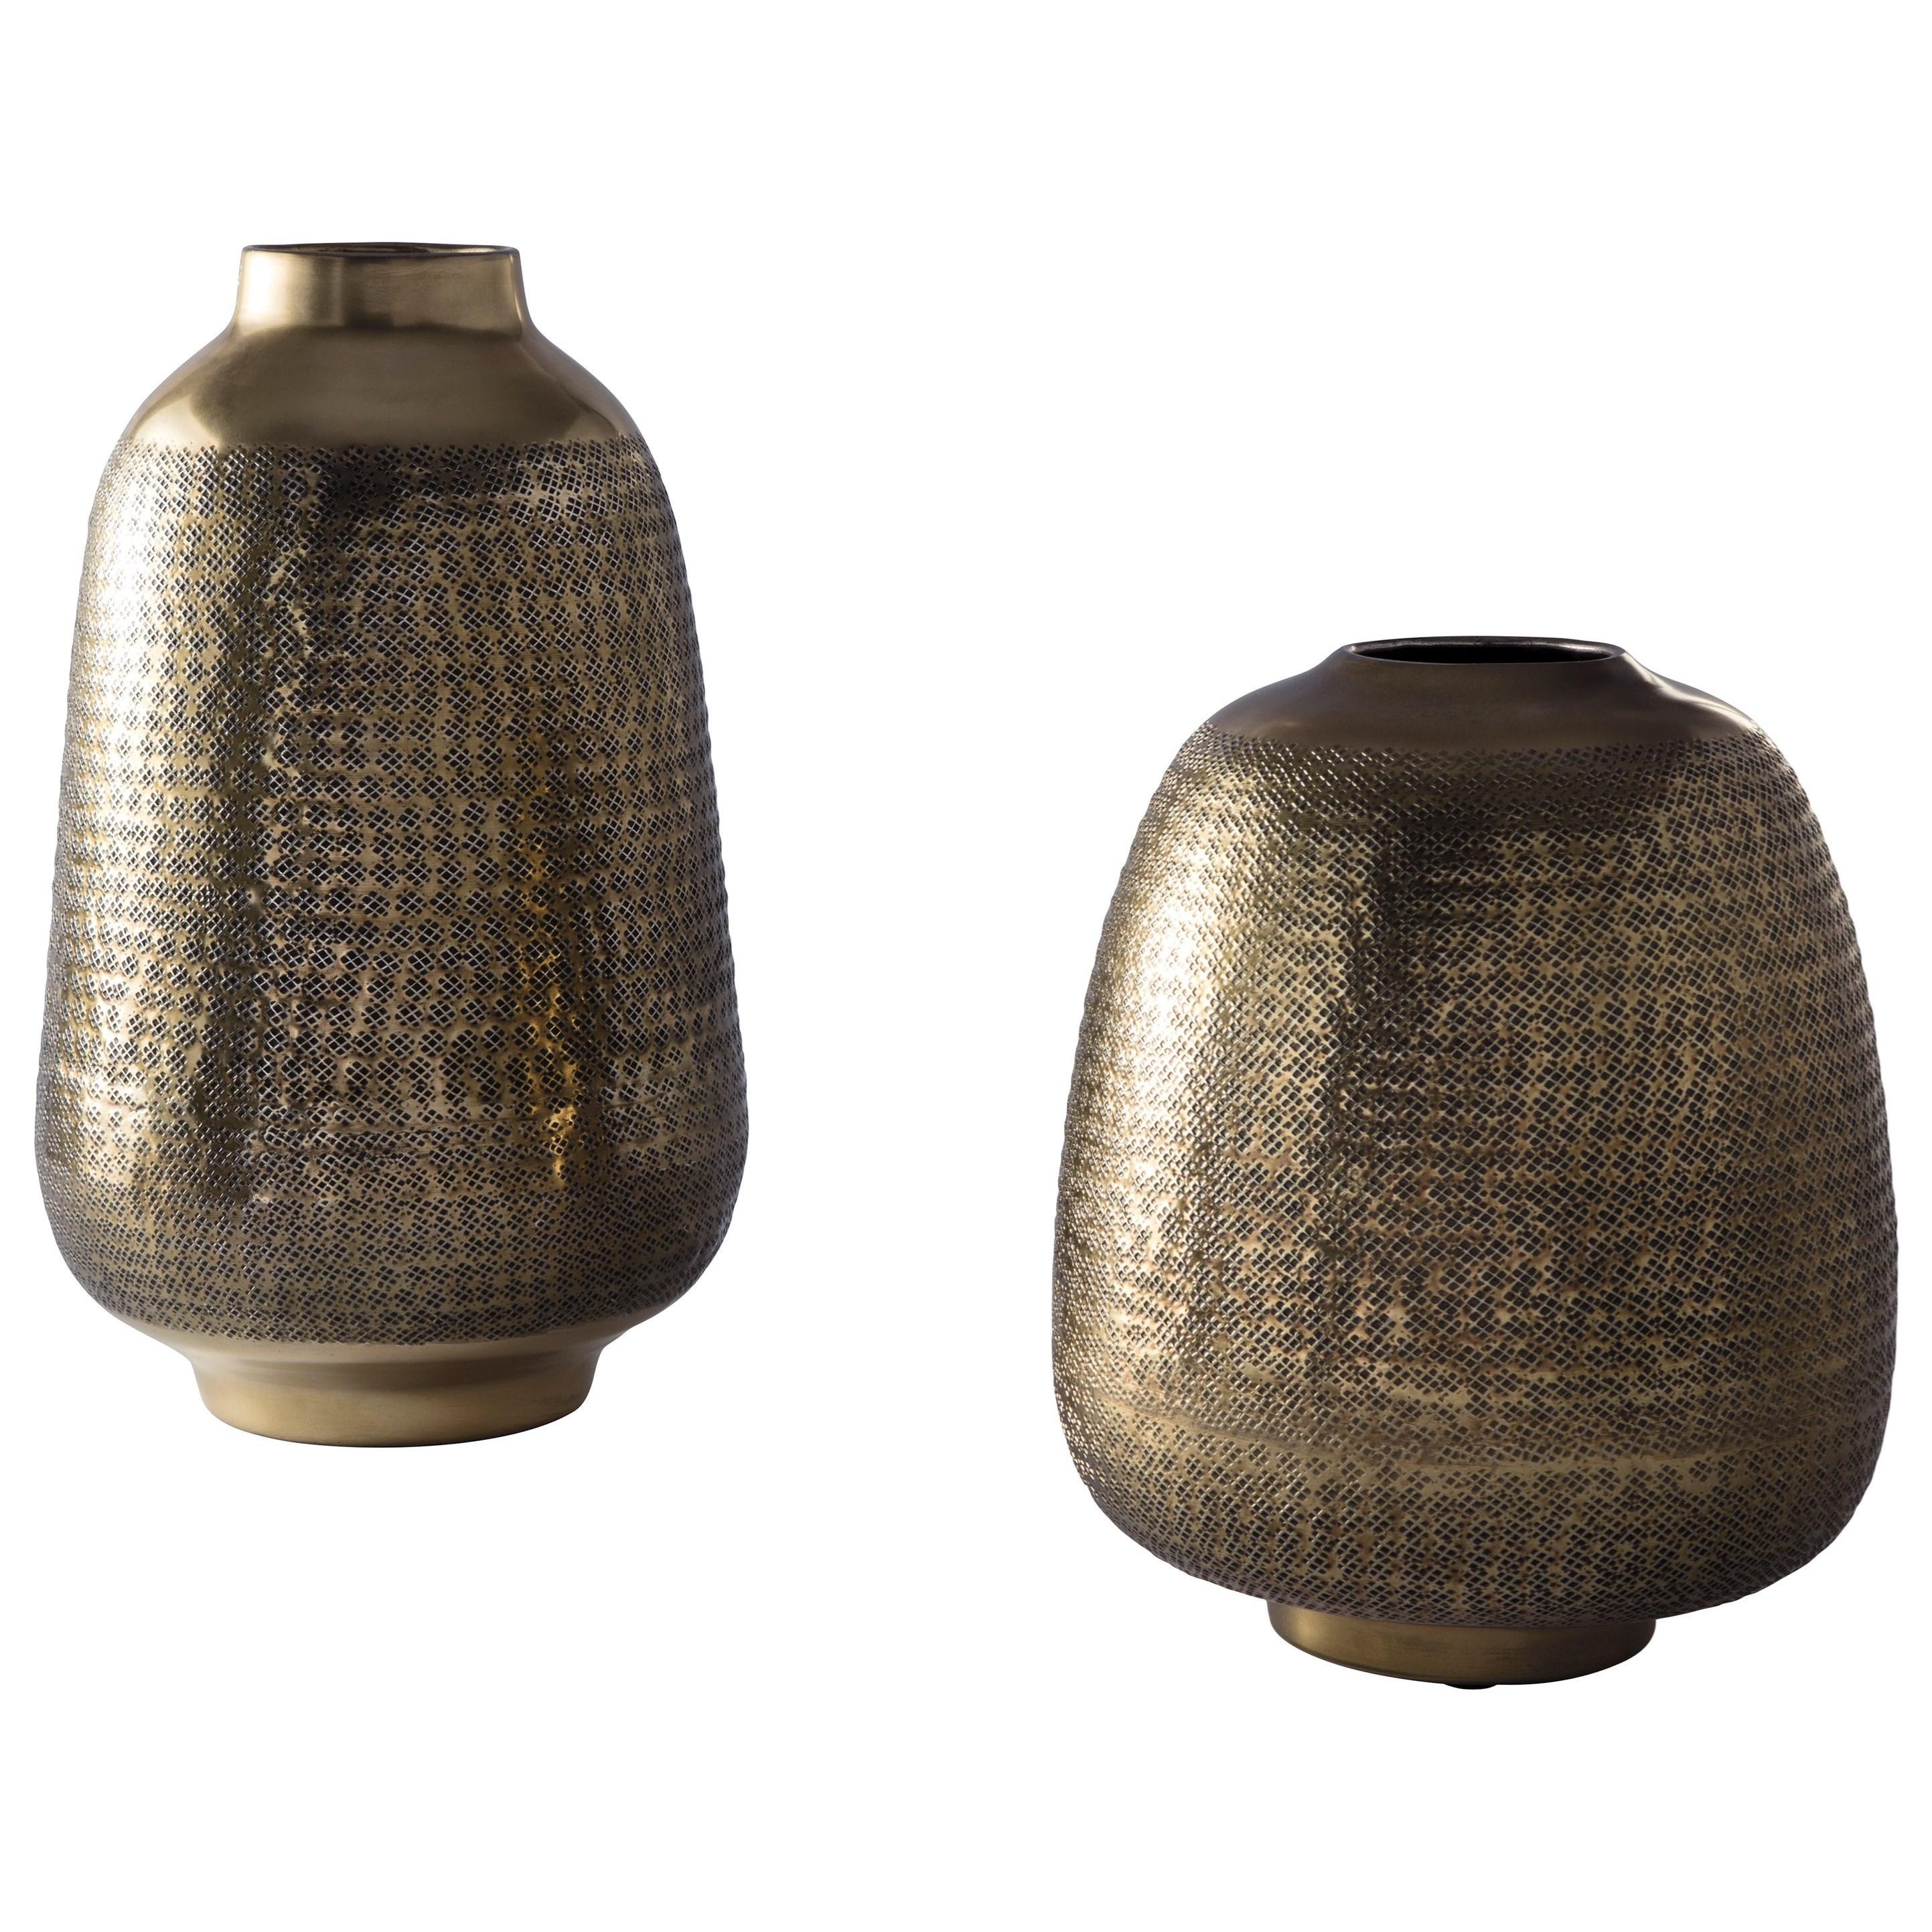 Accents Miette Antique Brass Finish Vase Set by Signature Design by Ashley at Coconis Furniture & Mattress 1st